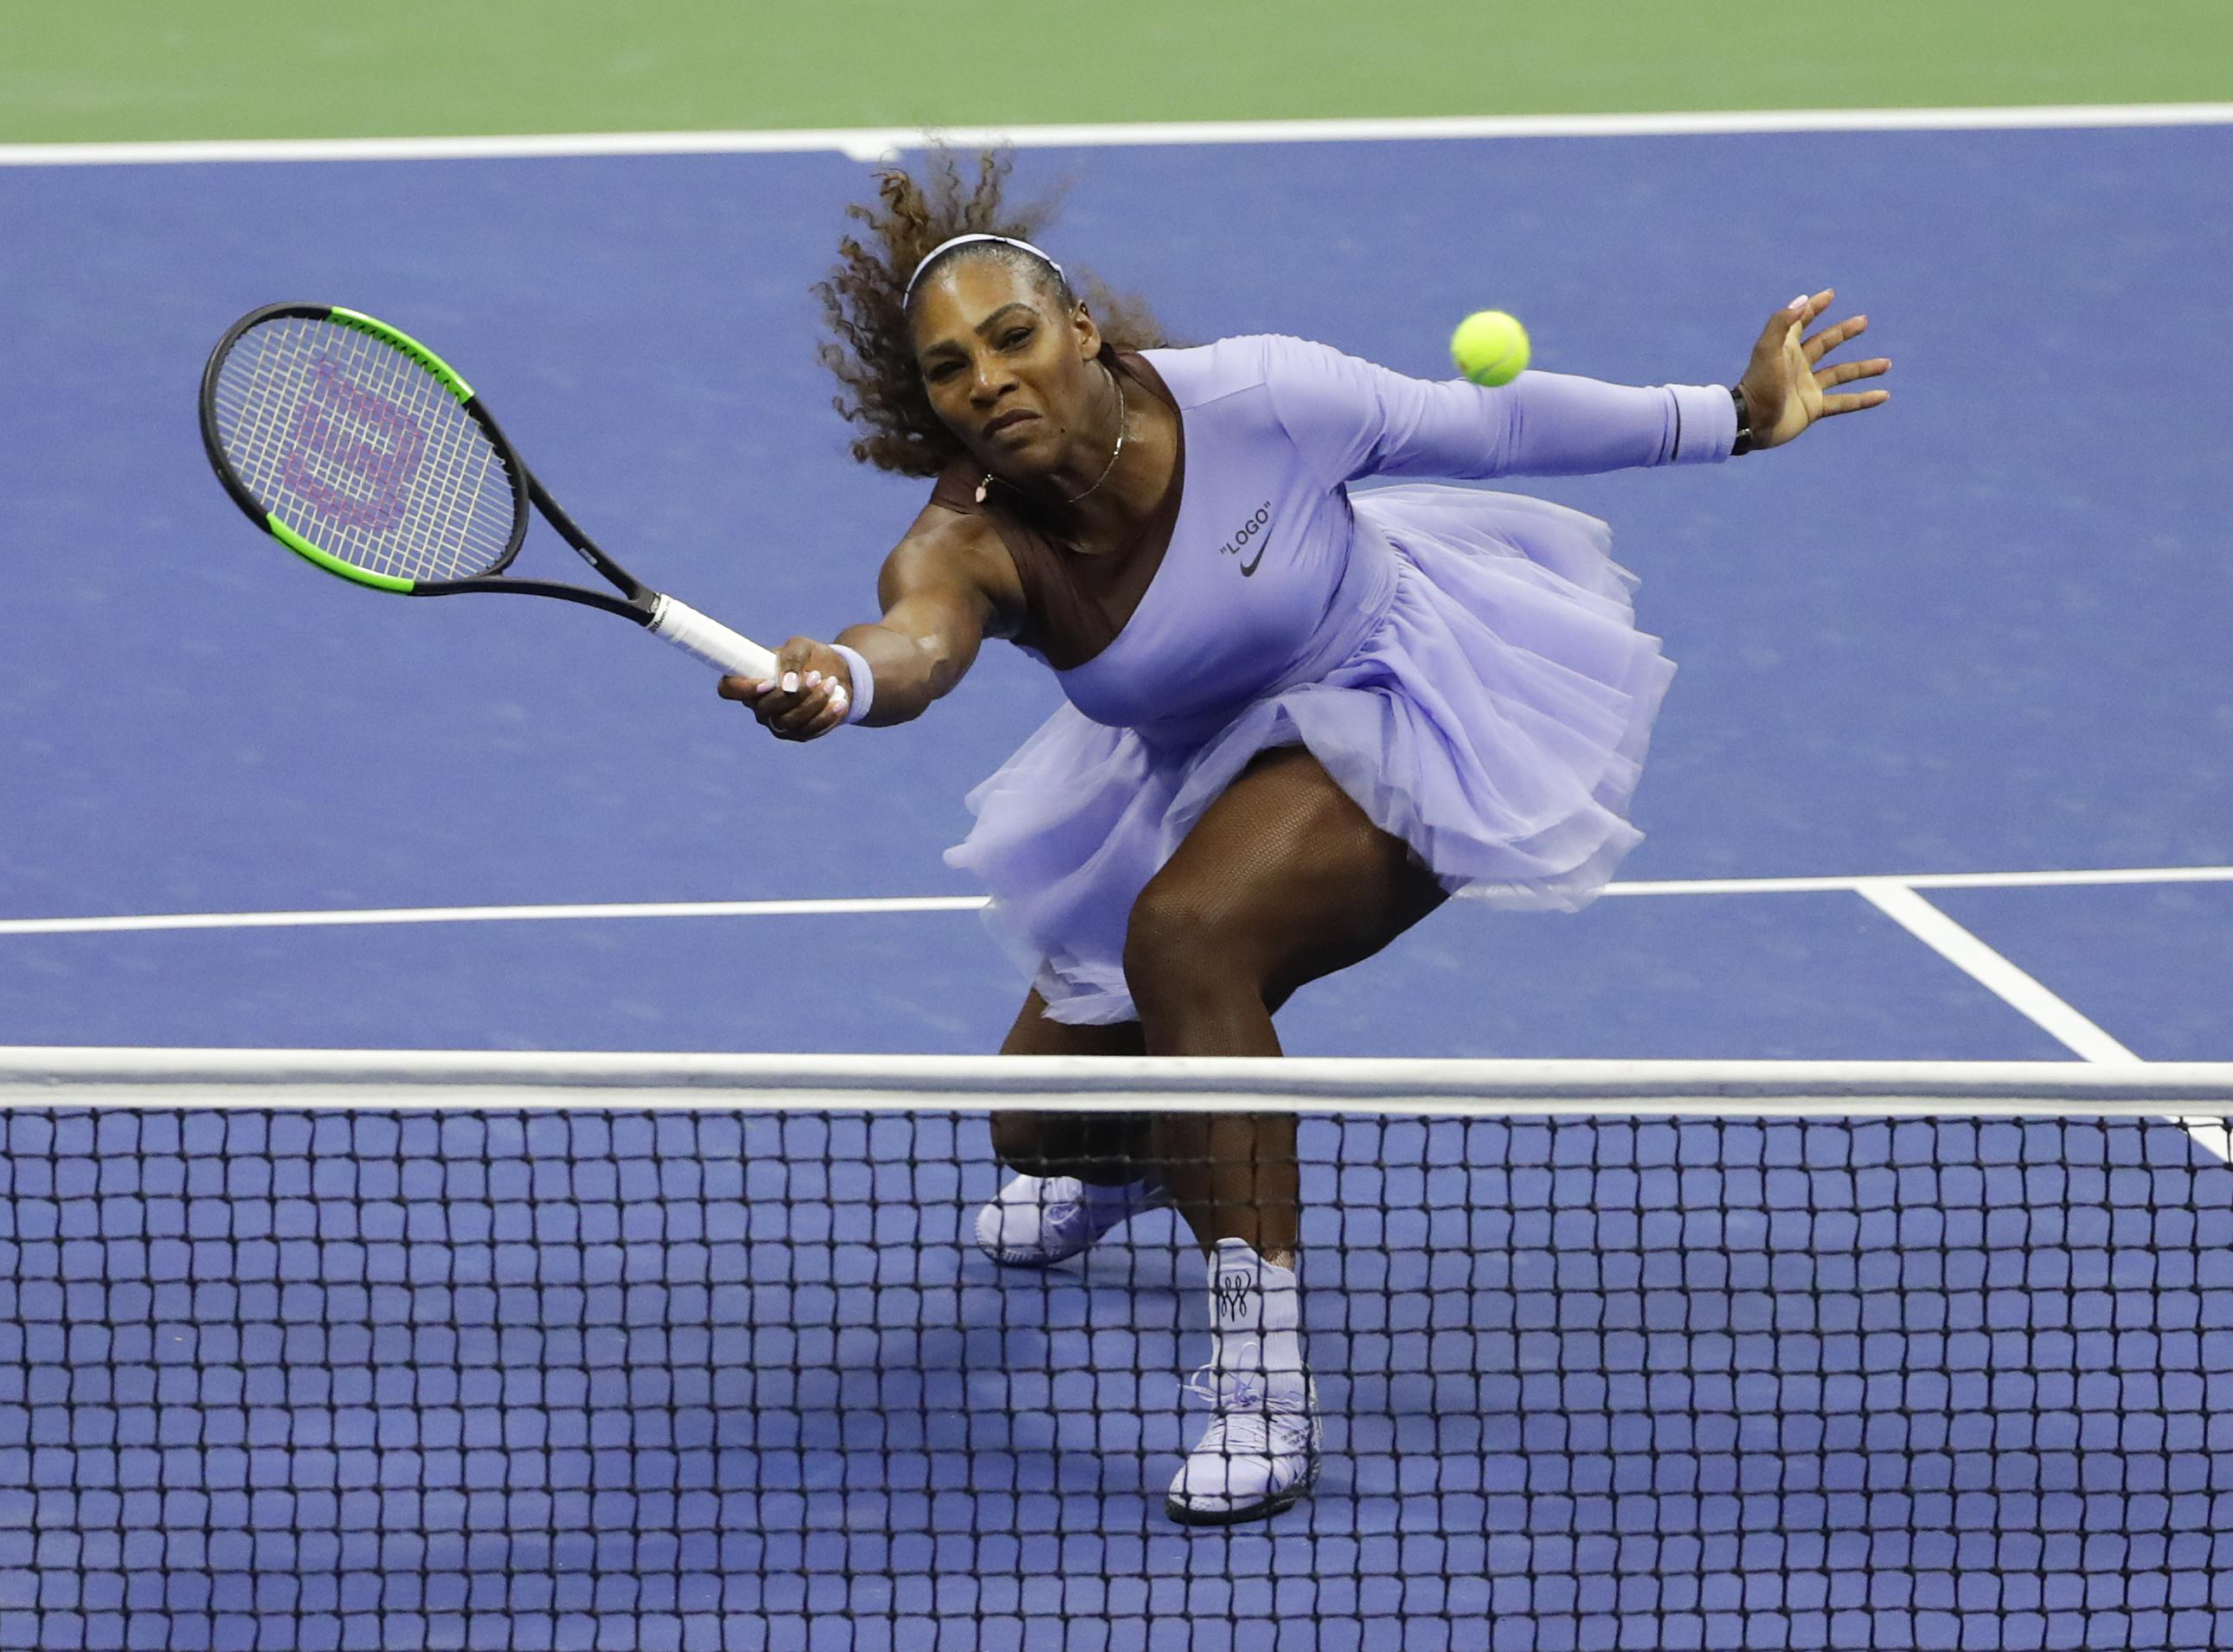 Serena Williams hopes to equal Margaret Court's all-time Grand Slam record